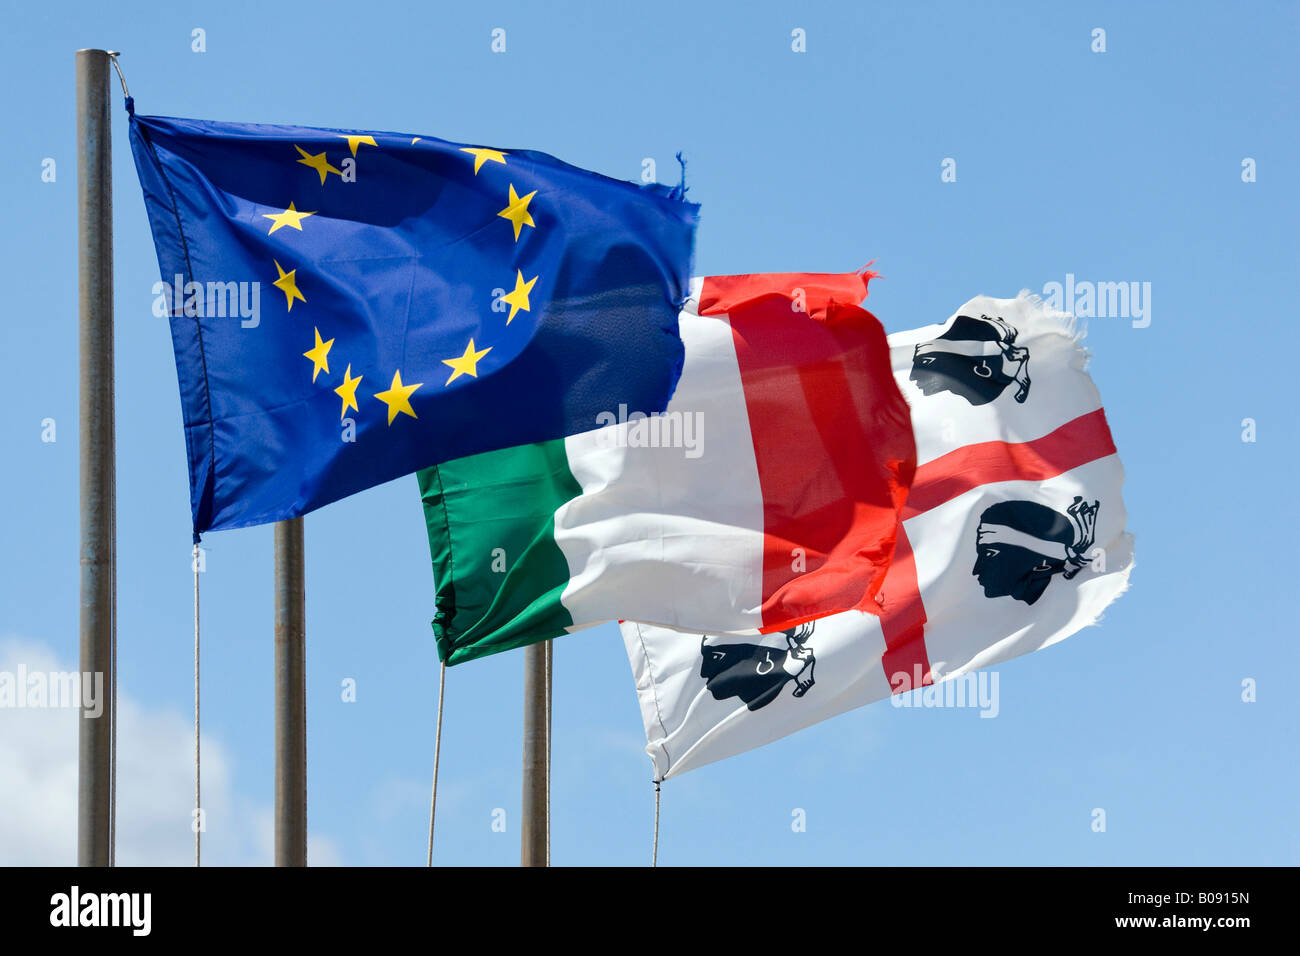 European Union, Italian and Sardinian flags, Cala Gonone, Sardinia, Italy - Stock Image